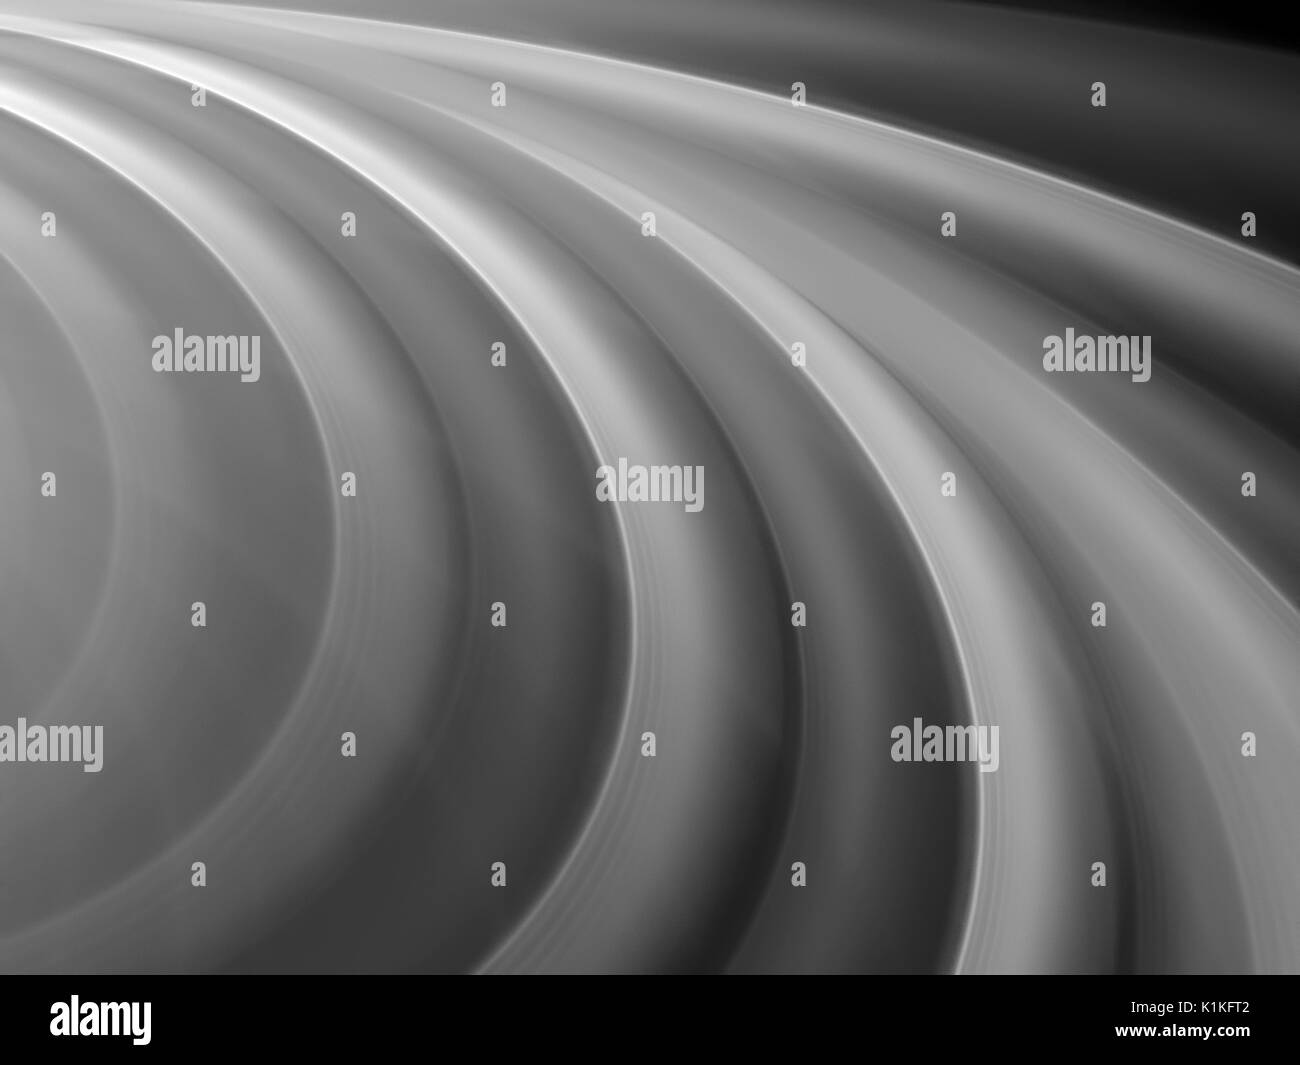 Curvy wavy shapes in space texture, black and white, computer generated abstract background, 3D rendering - Stock Image